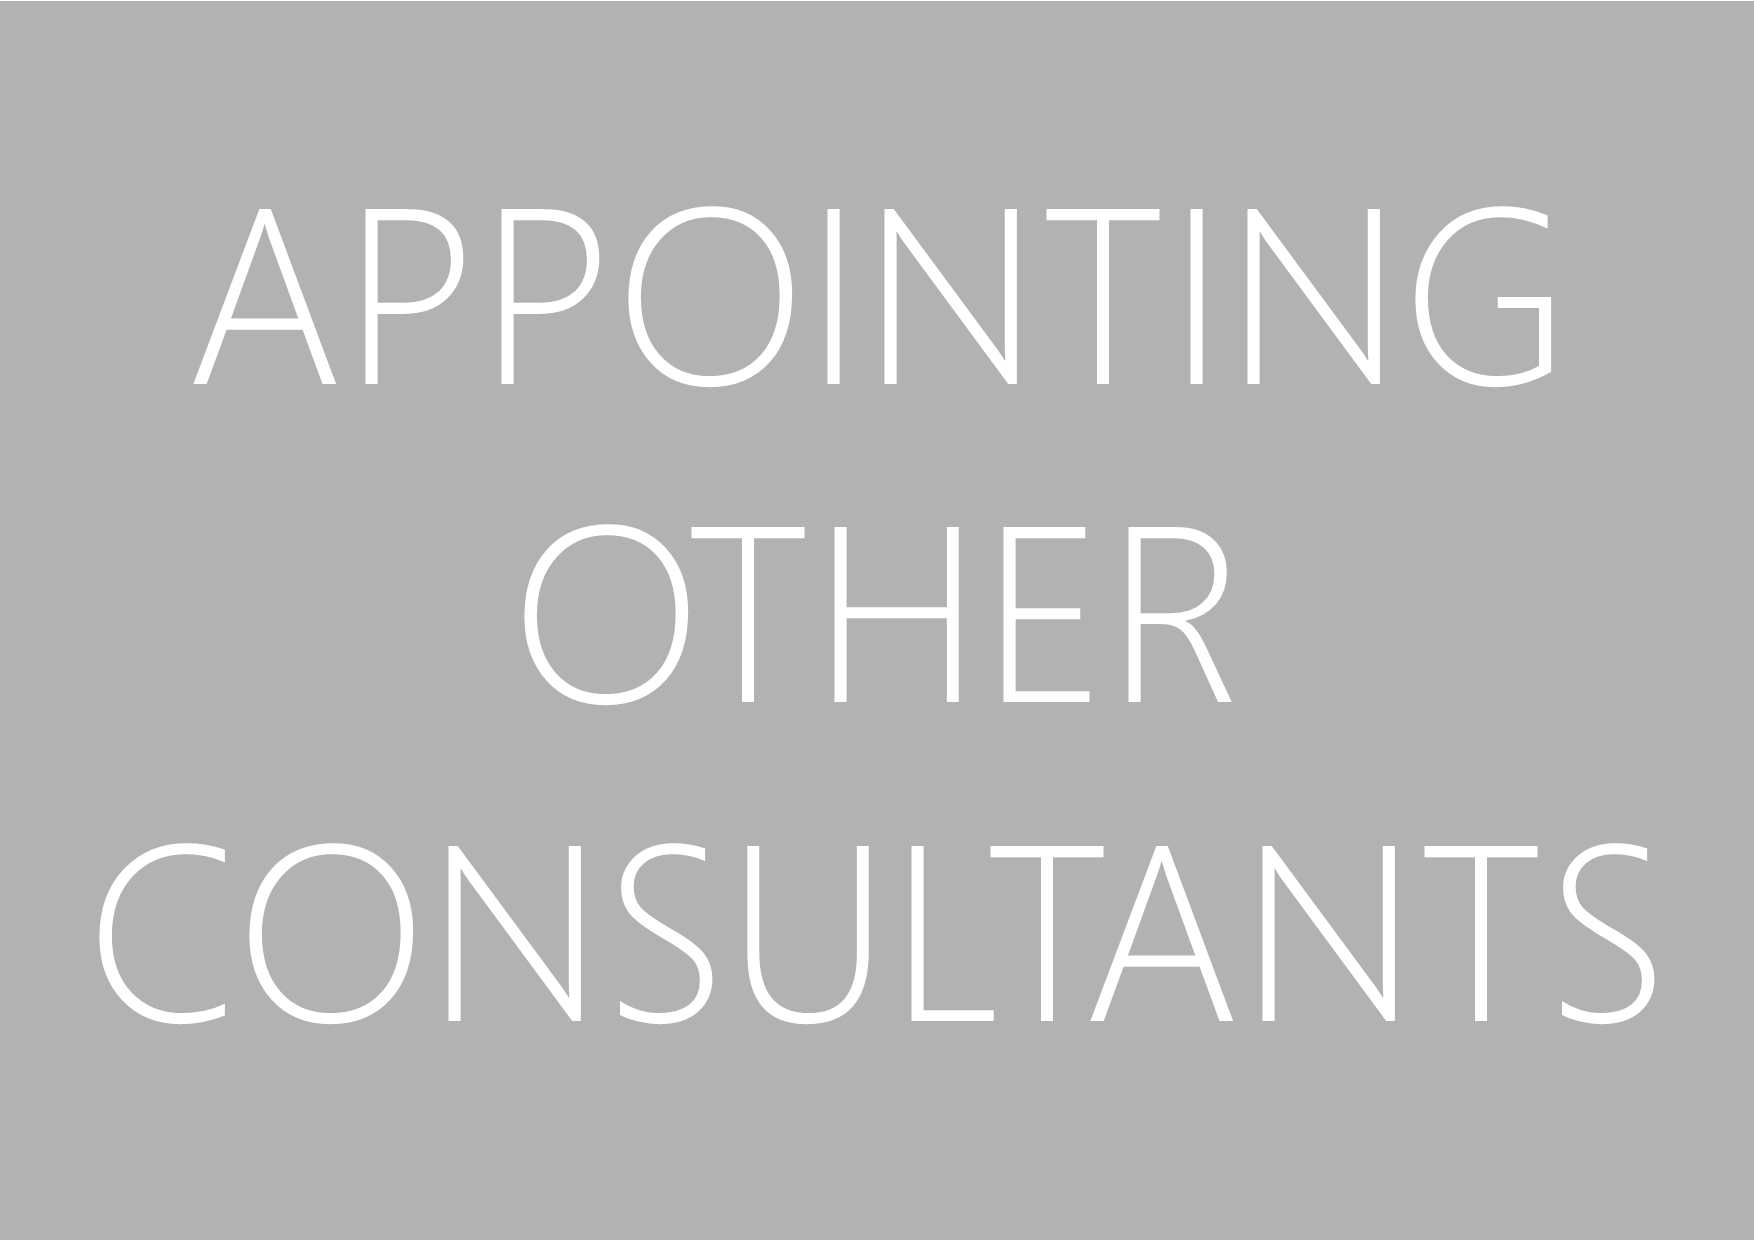 Appointing other Consultants